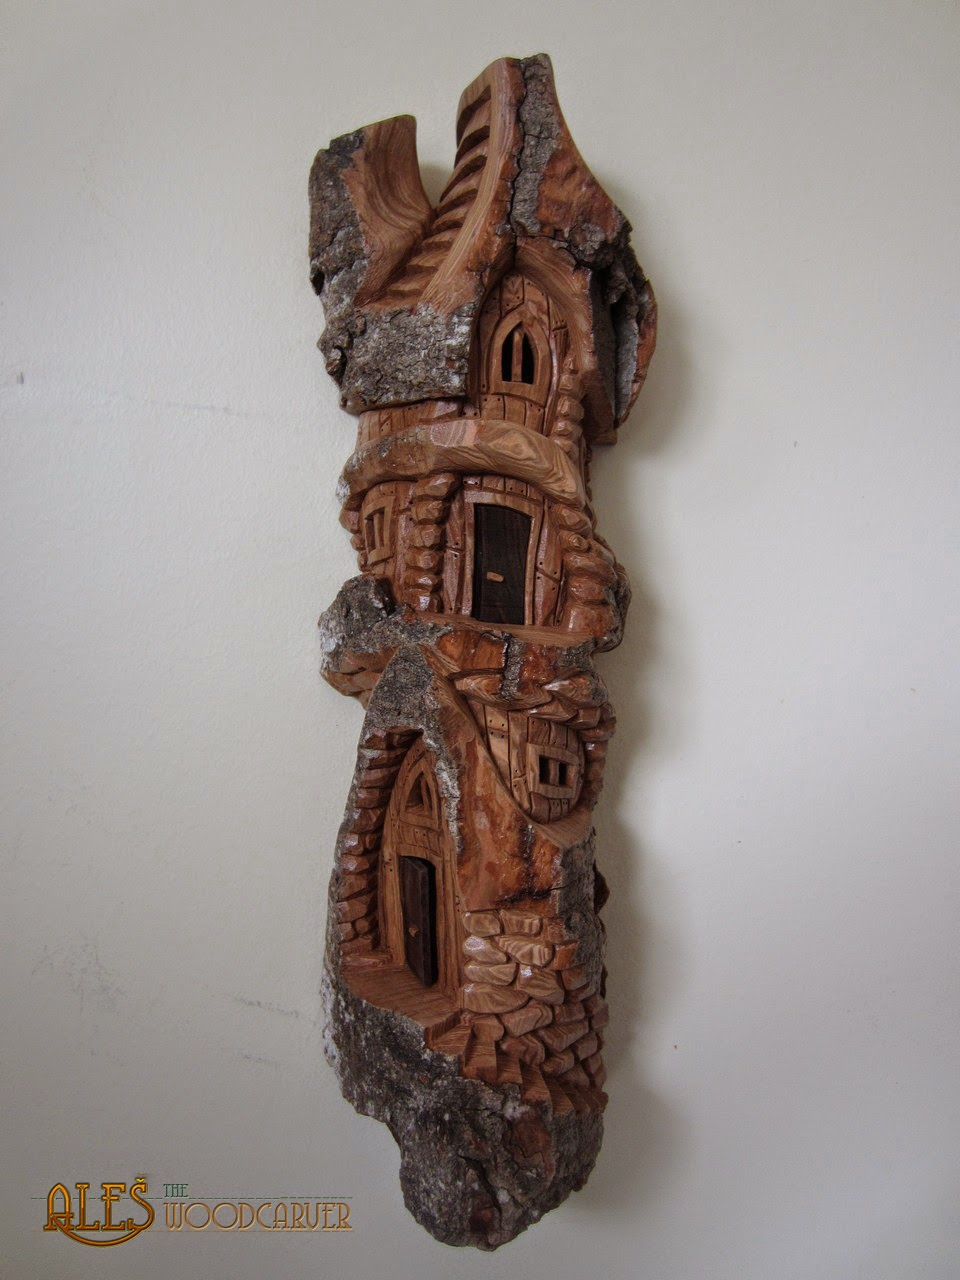 Wood carving whimsical houses bing images